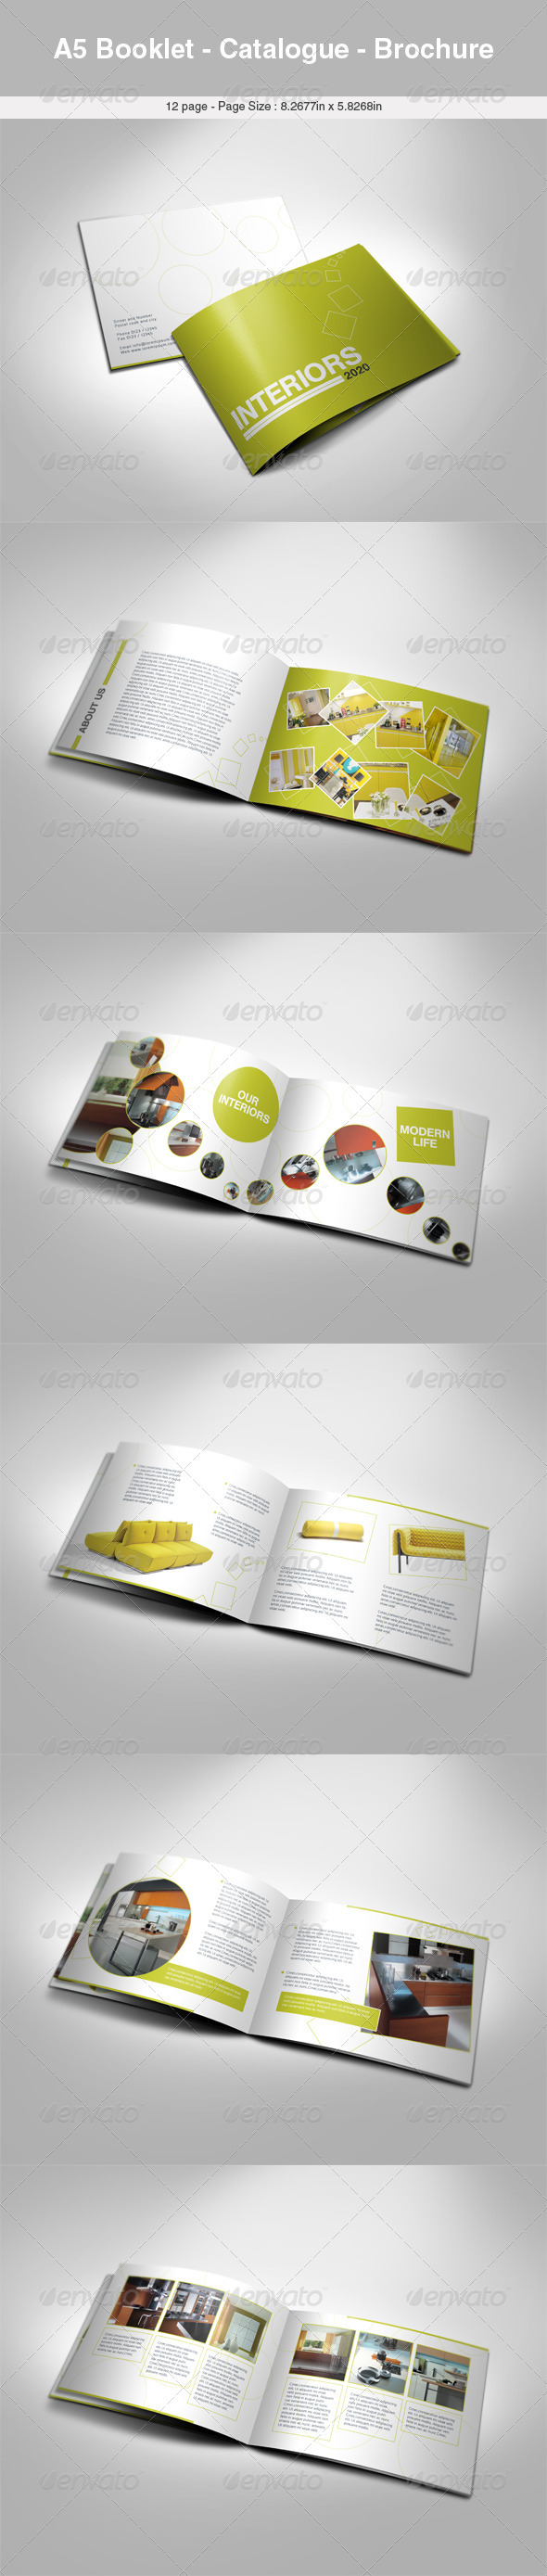 A5 Booklet - Catalogue - Brochure  - Catalogs Brochures